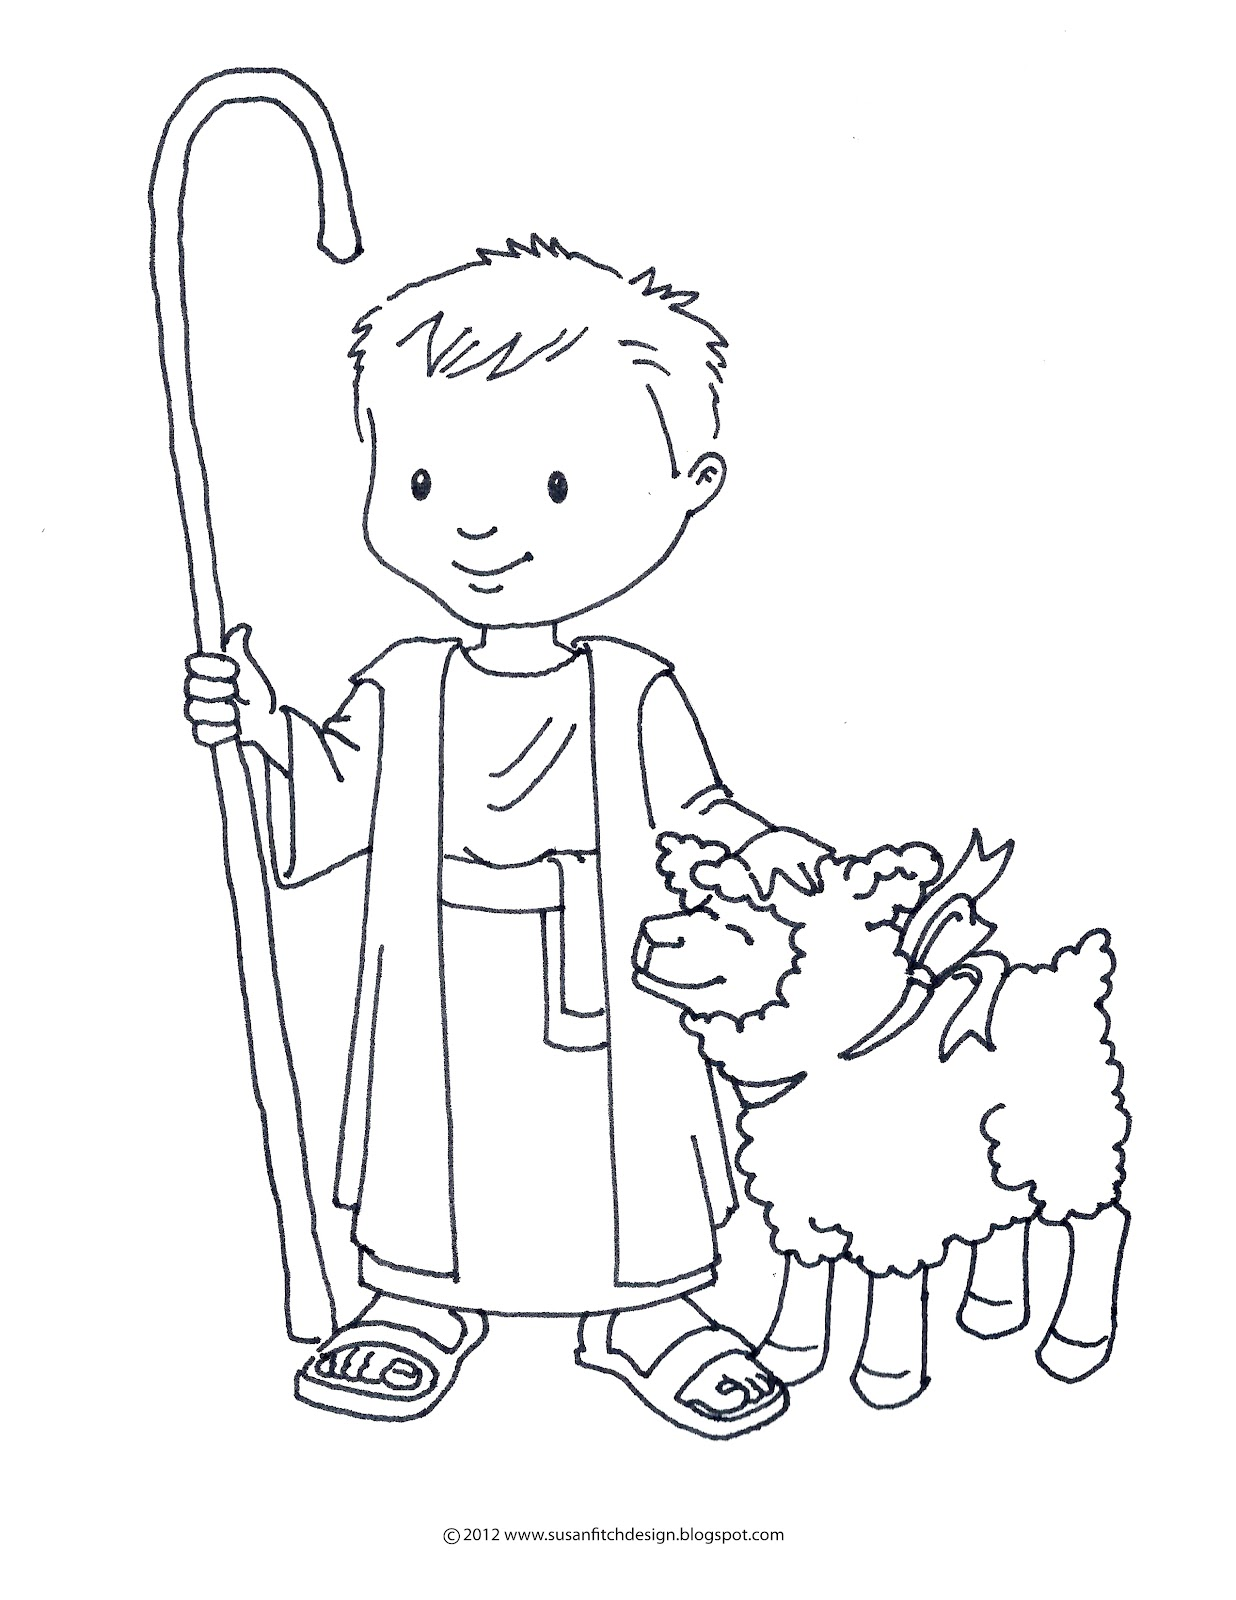 Free Coloring Pages Of Shepherd And Sheep David The Shepherd Boy Coloring Page